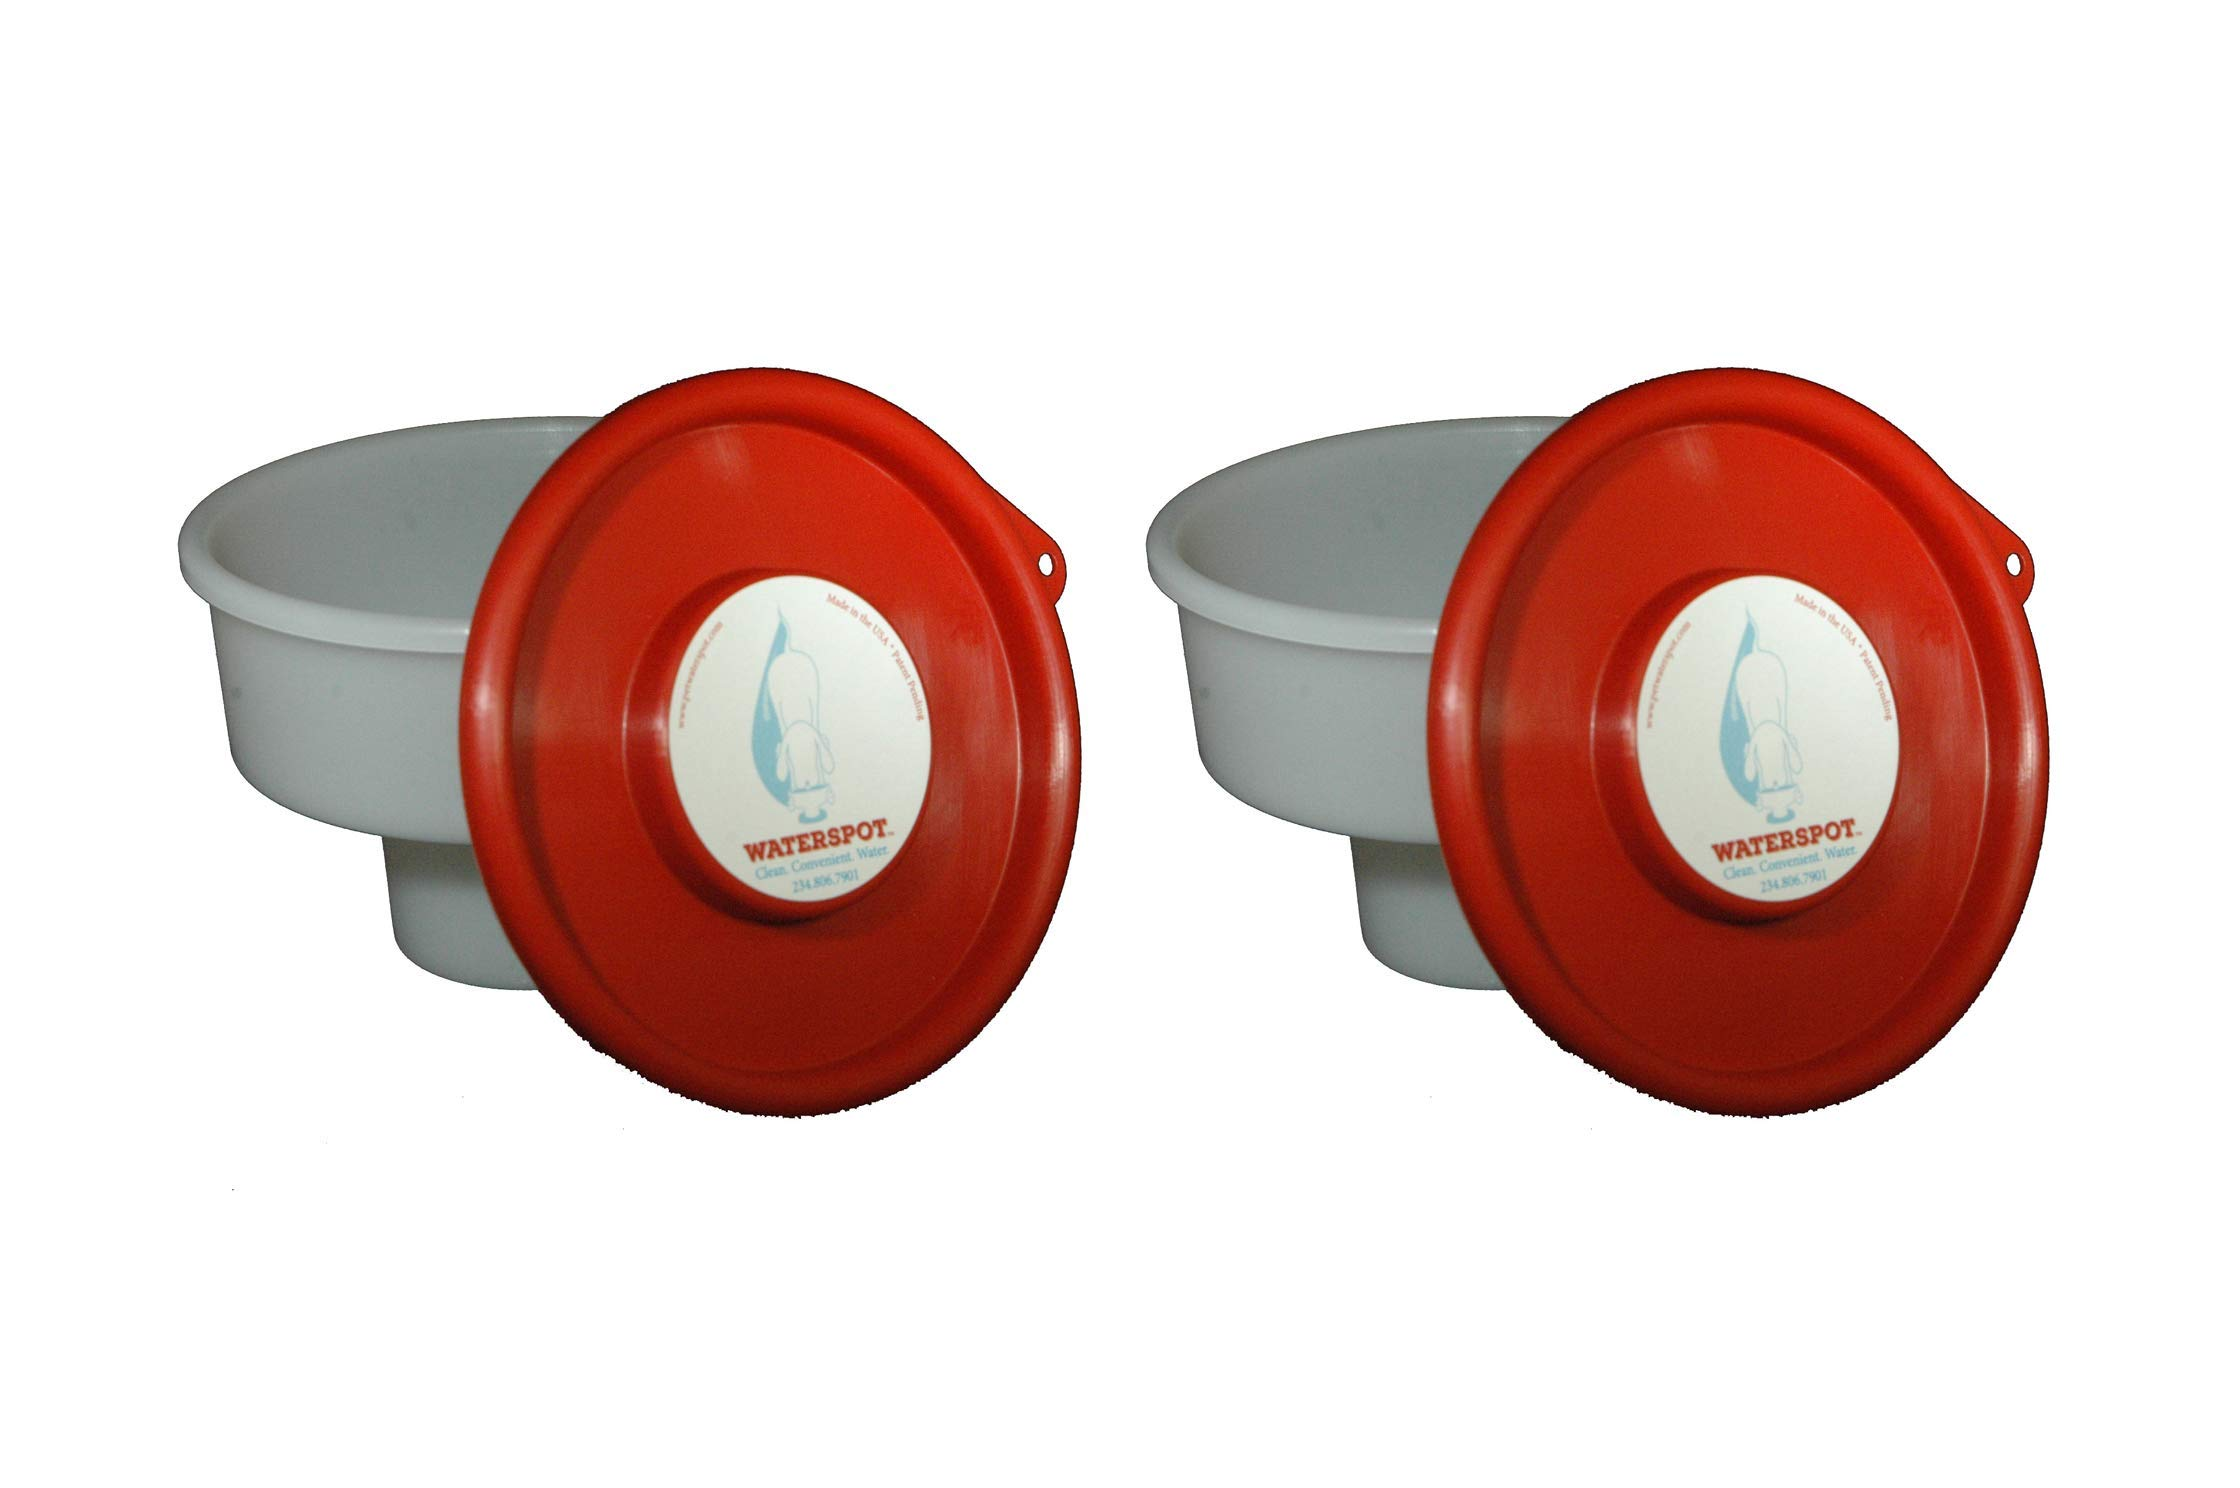 Pet Waterspot Travel Dog Bowl Fits Cupholder Large - 2 Pack (Both Red) by Pet Waterspot